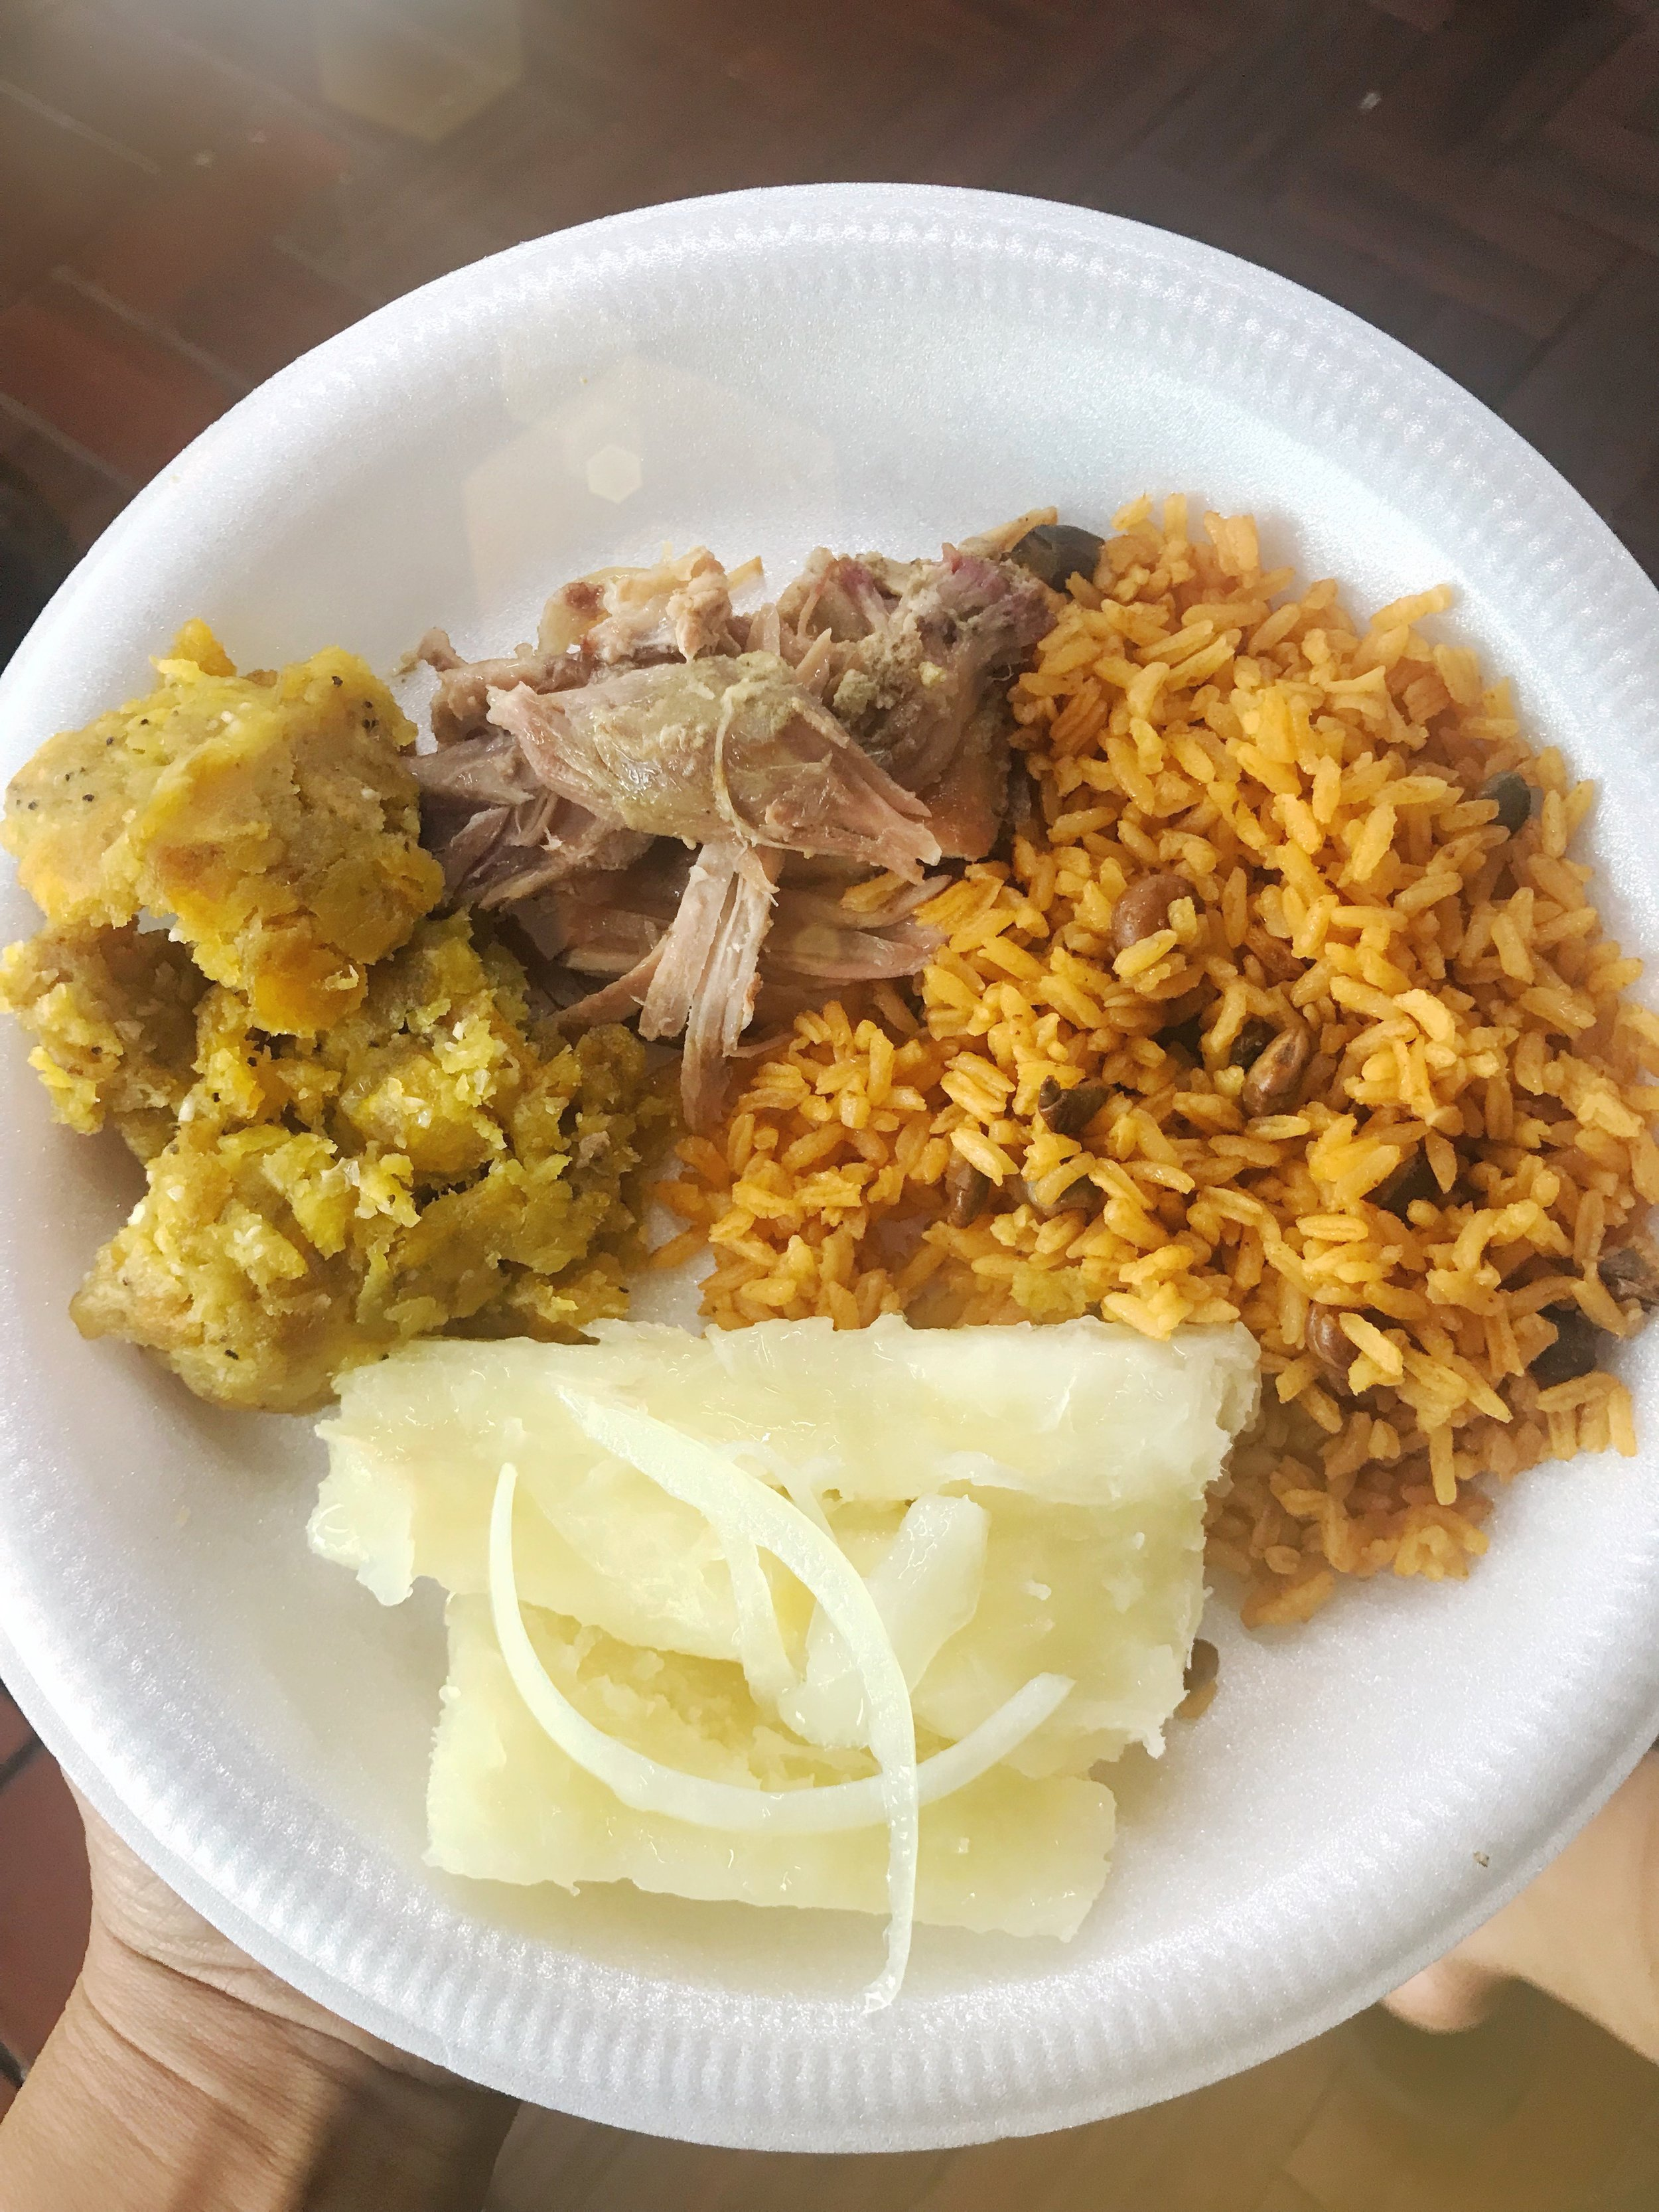 Typical Puerto Rican cuisine, which has deep roots in West African gastronomy